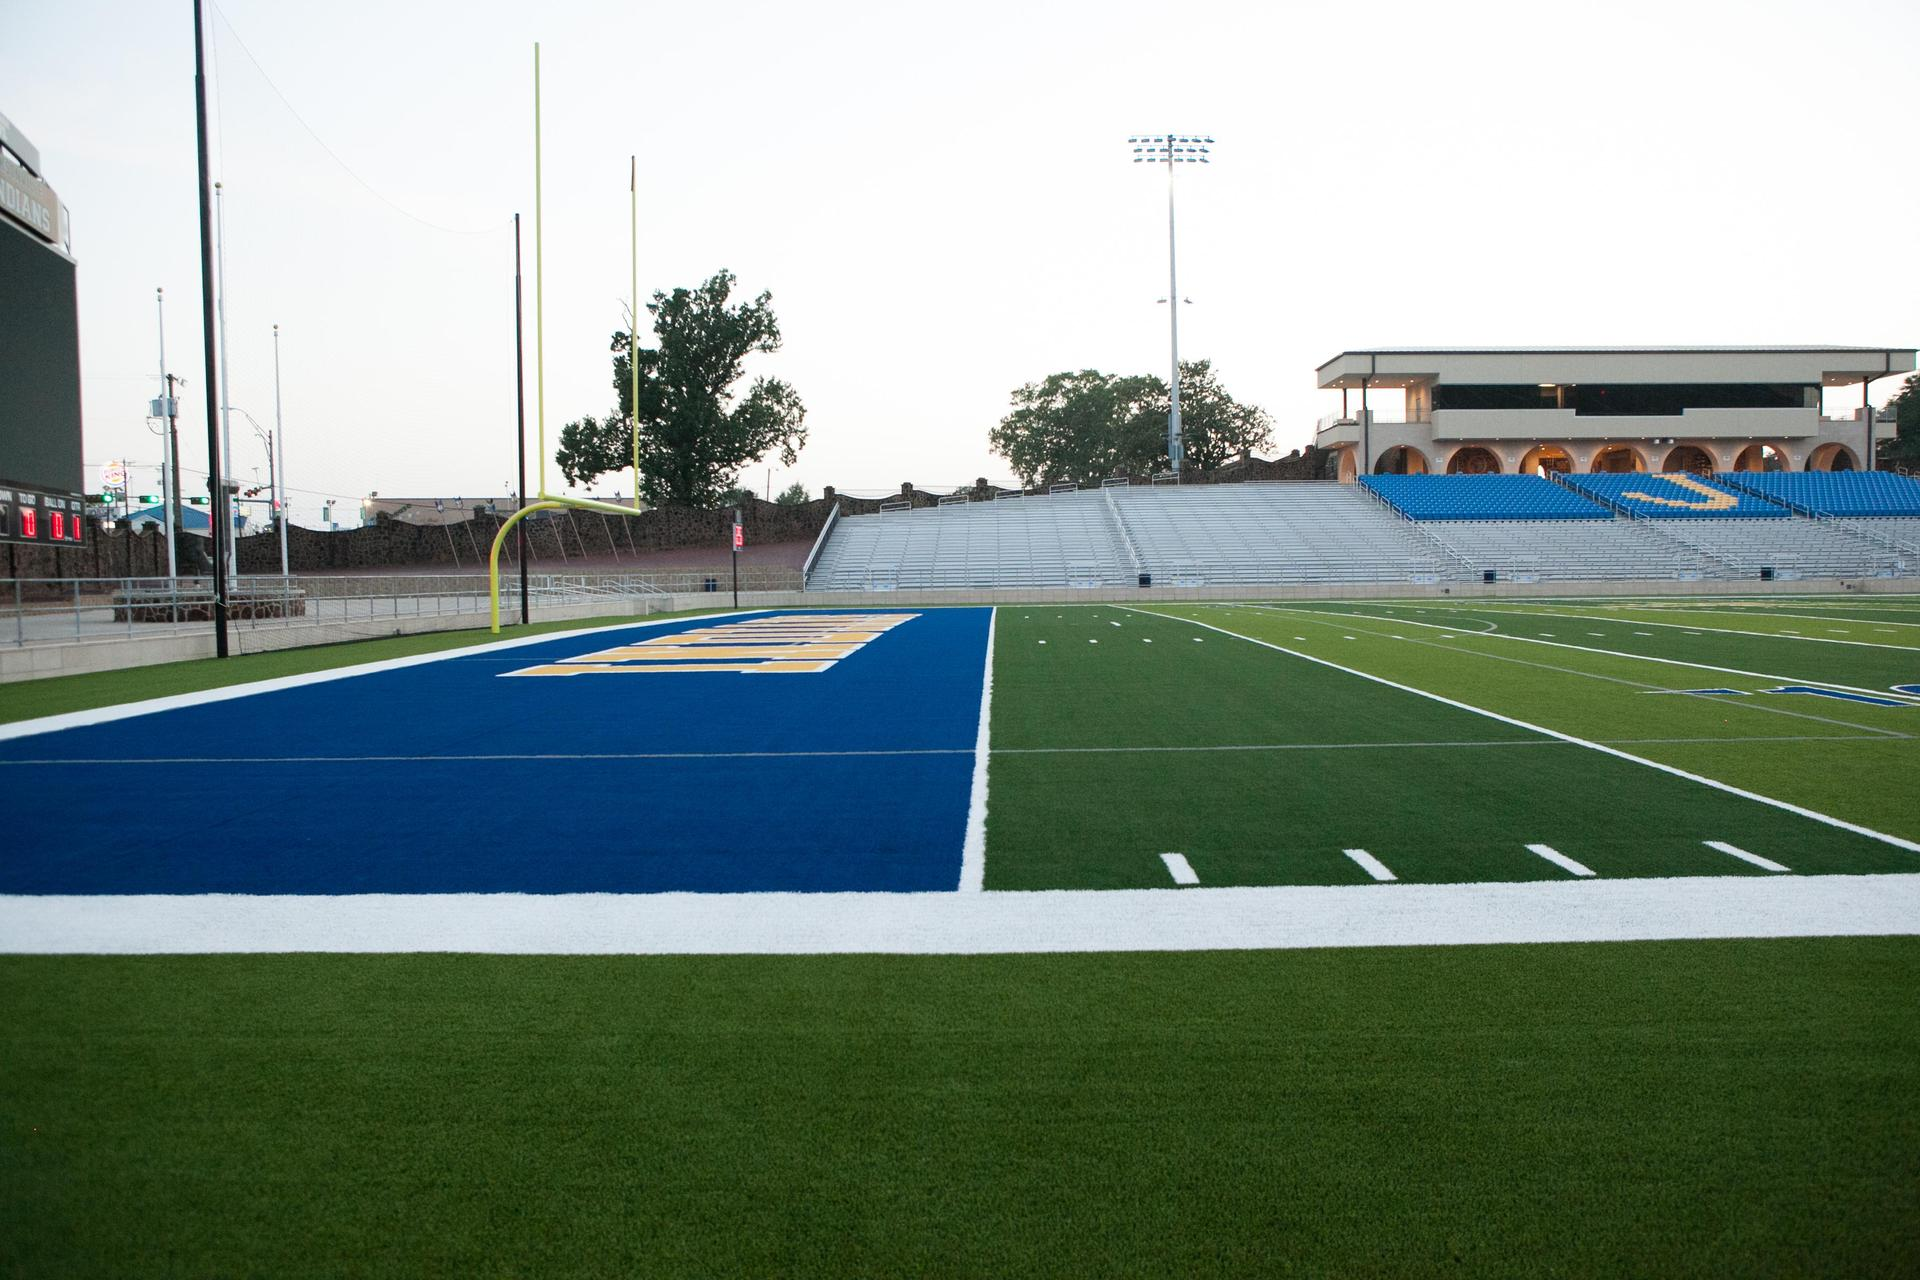 home side view from field